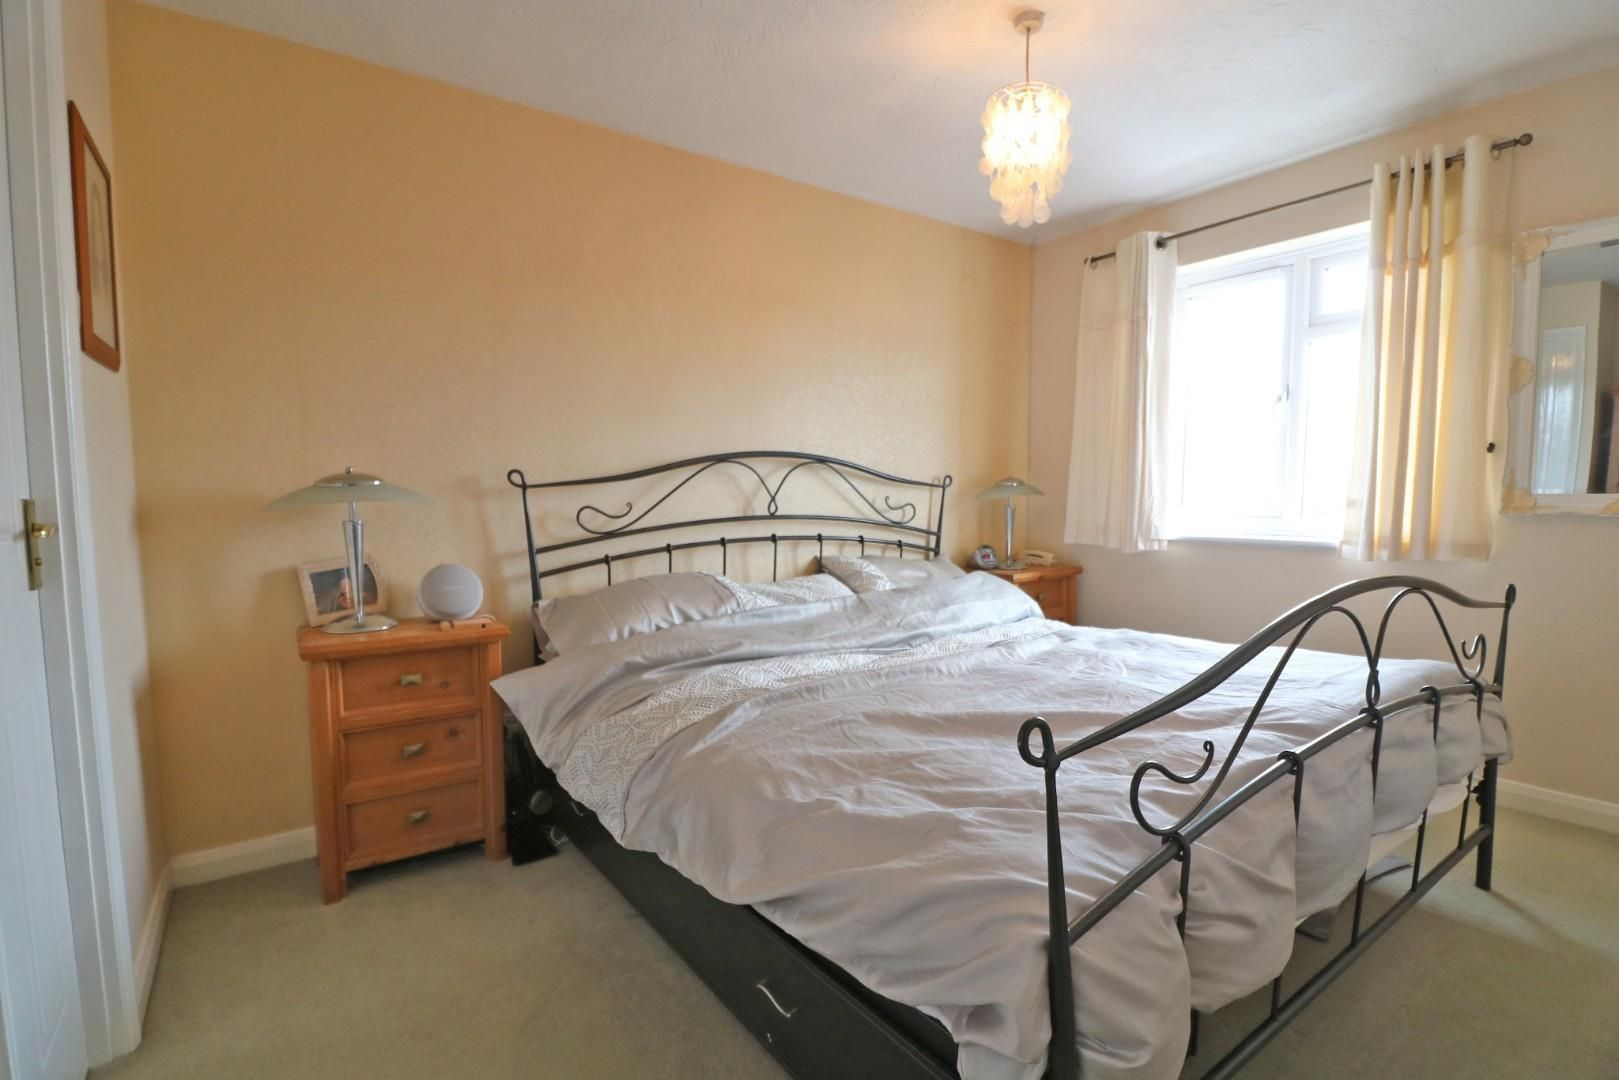 3 bed house for sale in Woodley 7